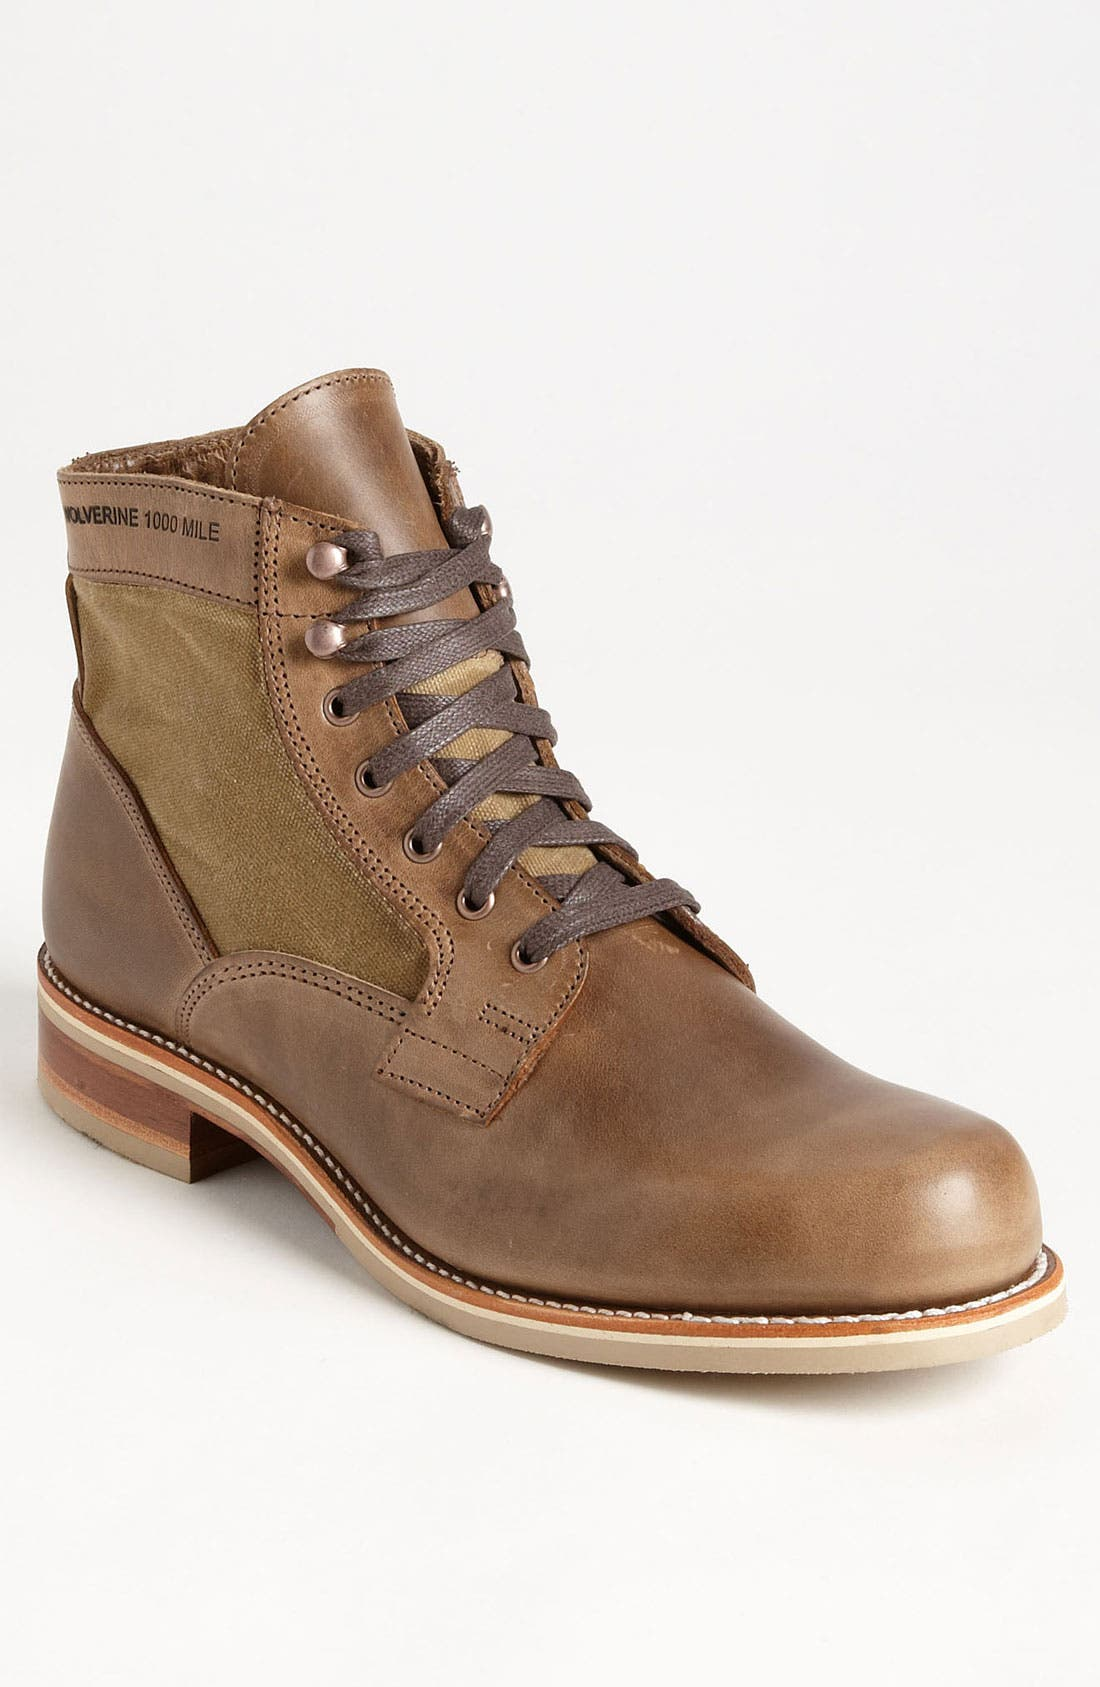 '1000 Mile - Whitepine' Boot,                             Main thumbnail 1, color,                             Natural Brown